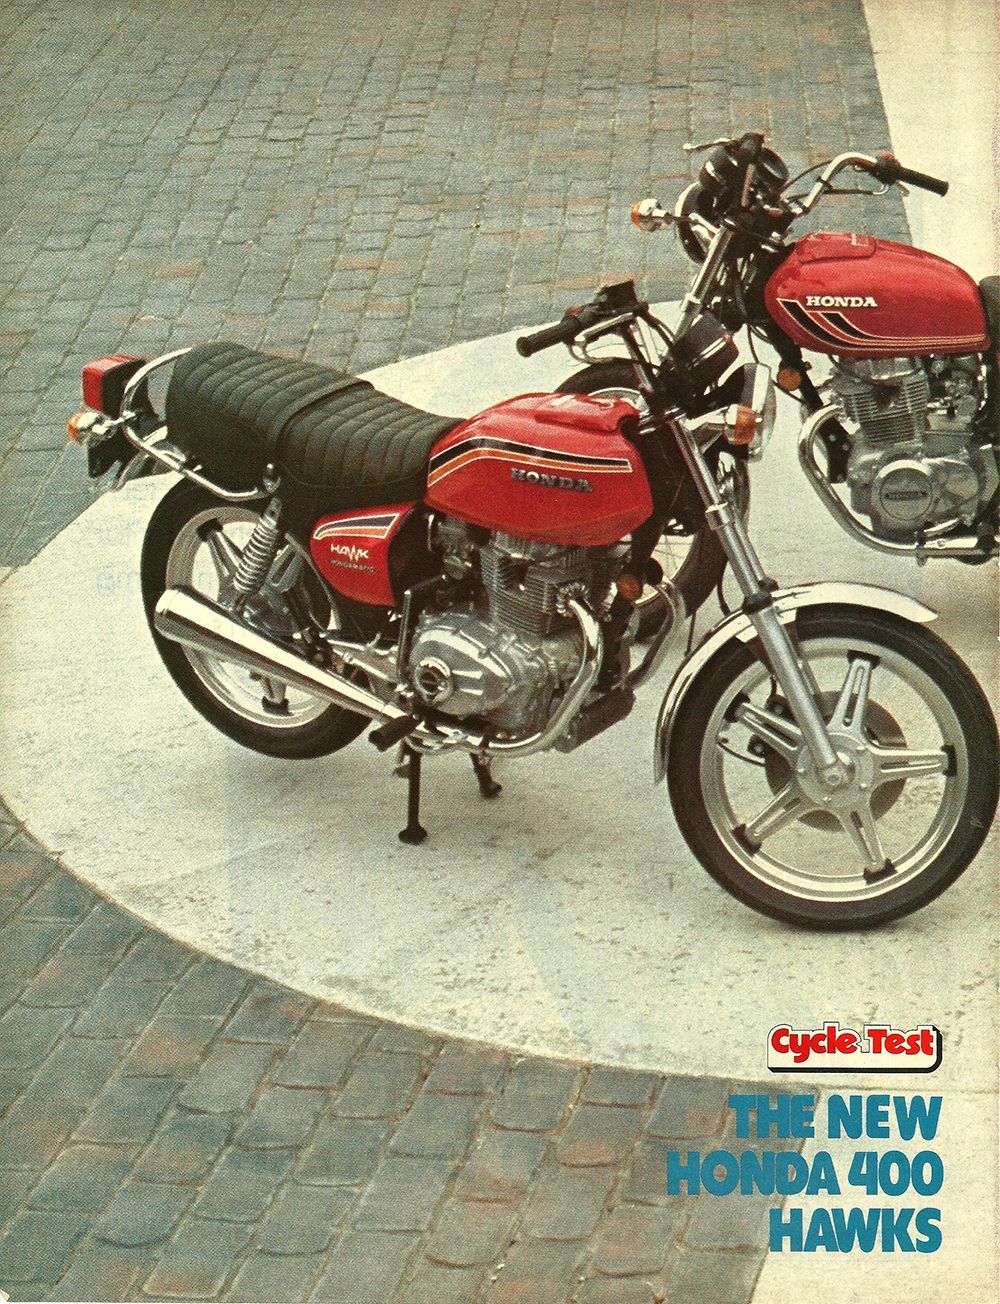 Cycle Test 1977 CB400T - The New Honda 400 Hawks | 4into1 ...